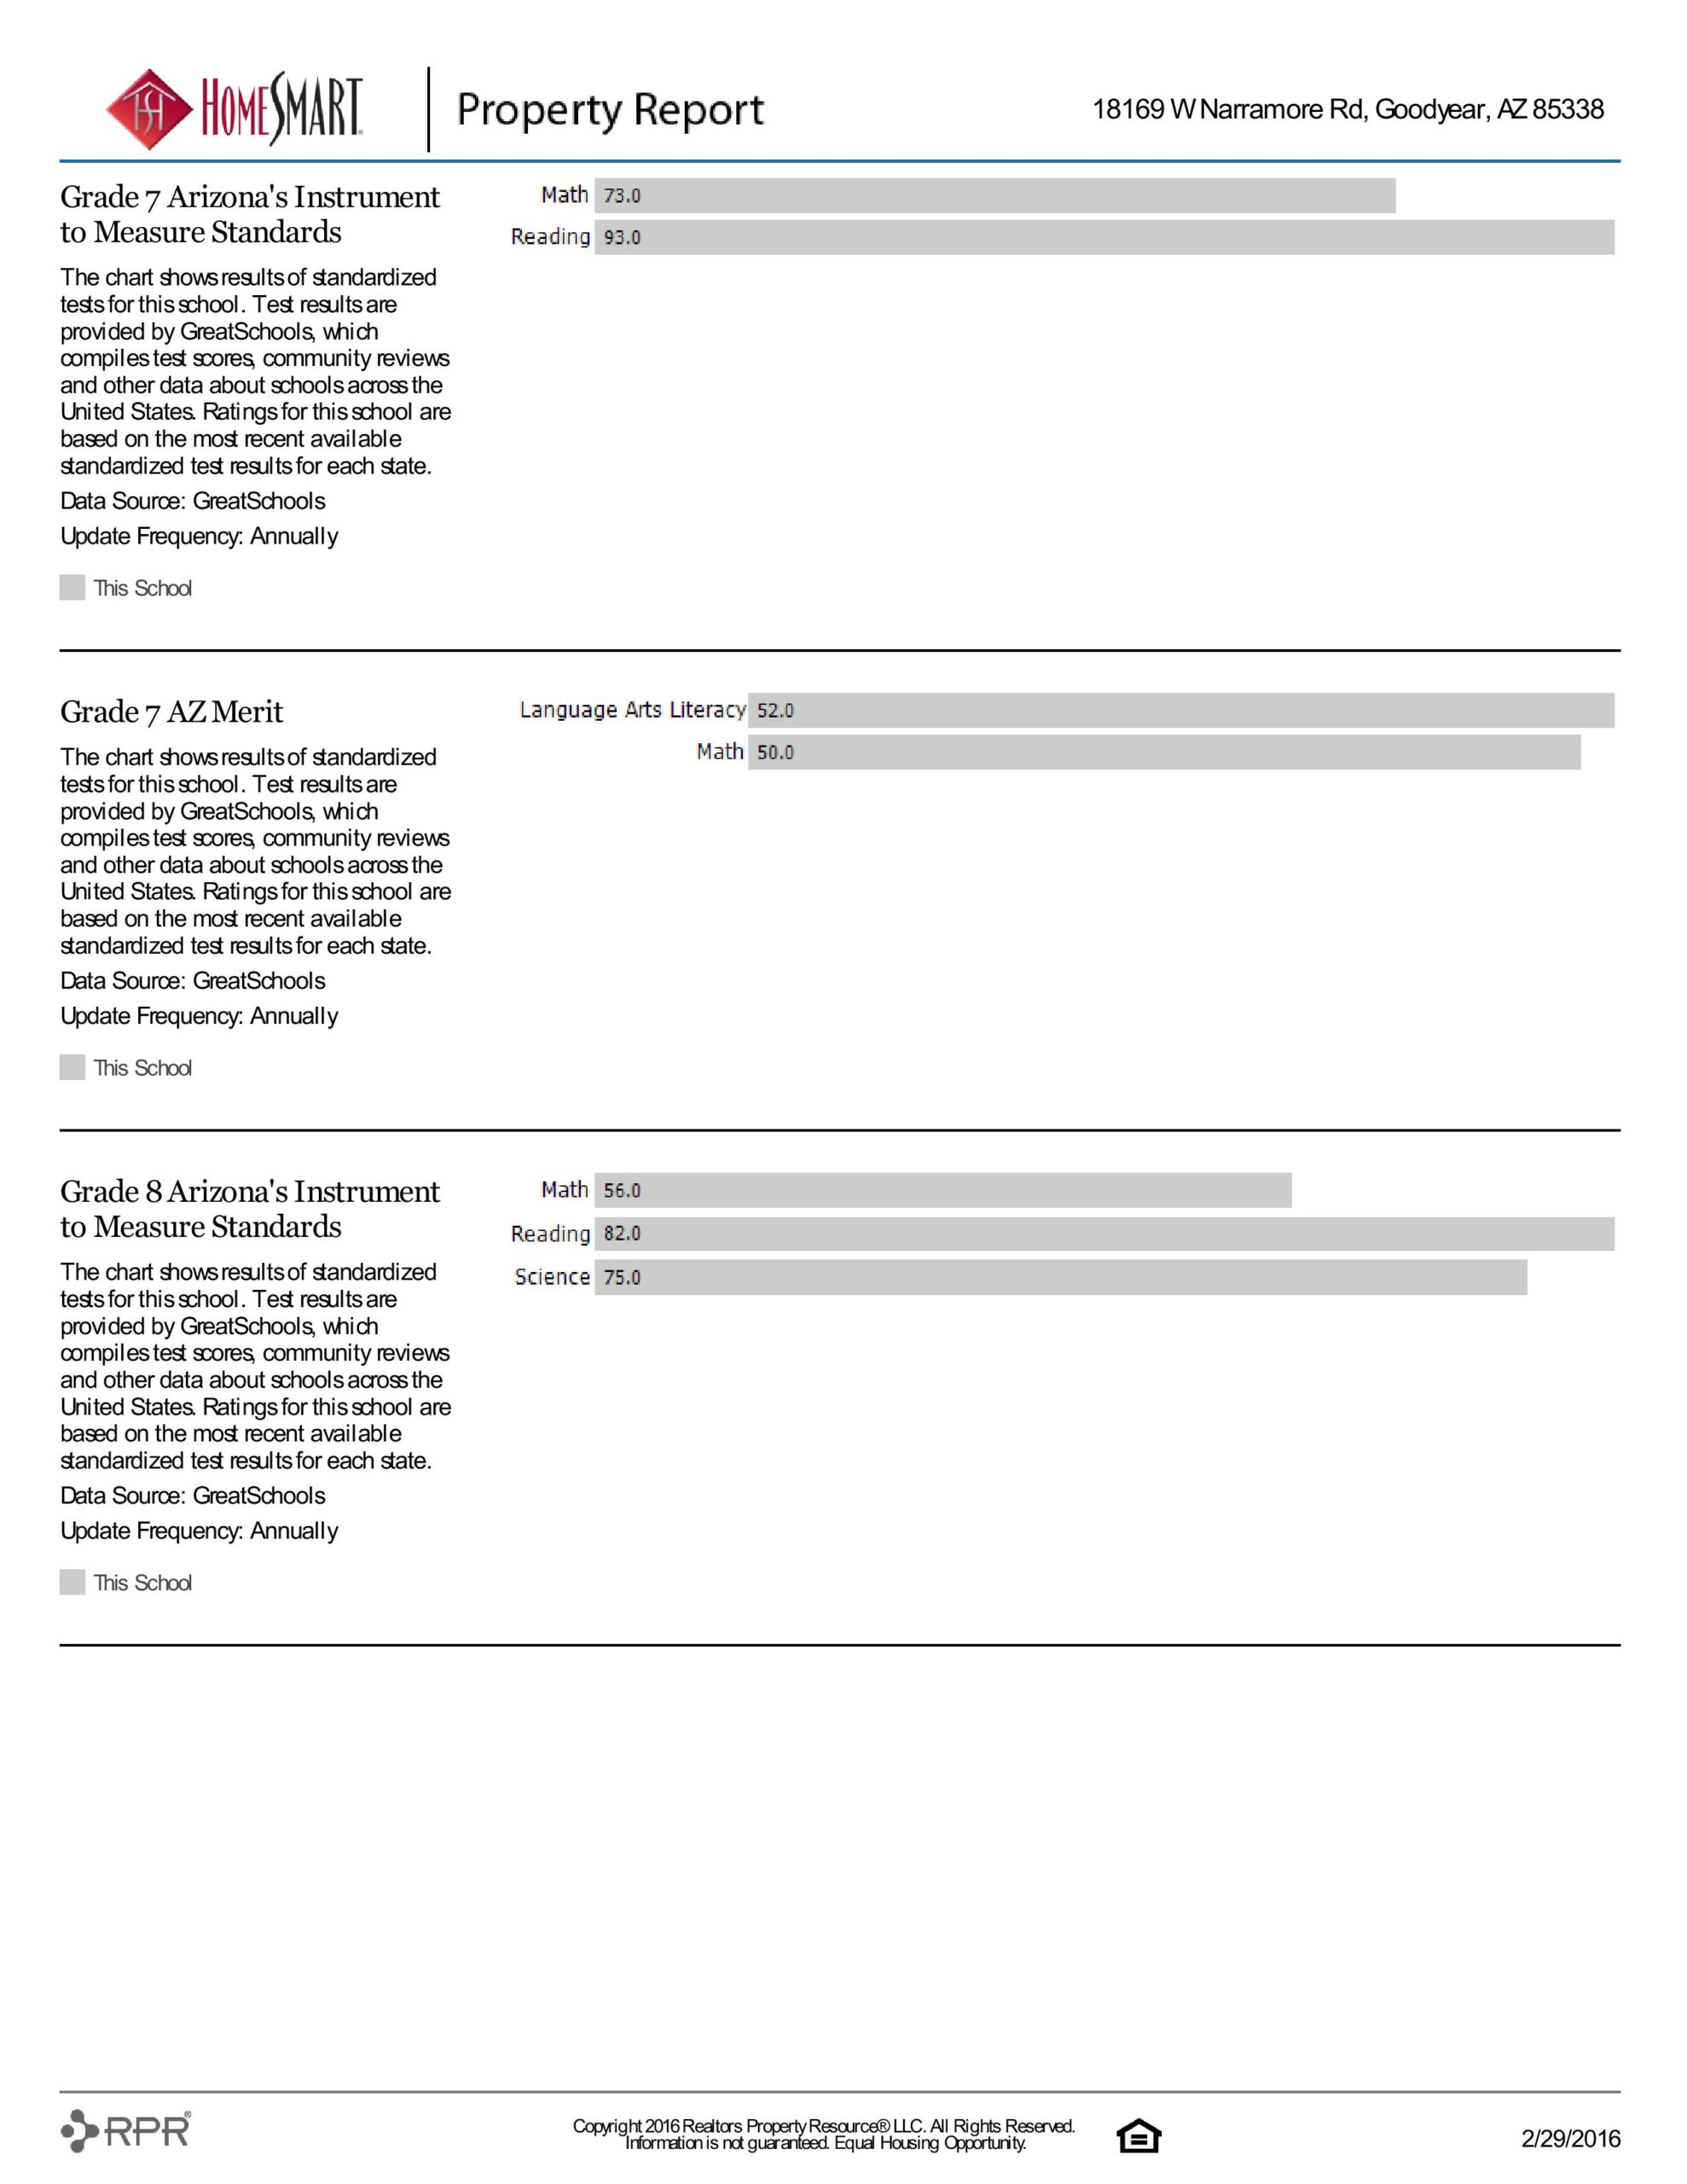 18169 W NARRAMORE RD PROPERTY REPORT-page-042